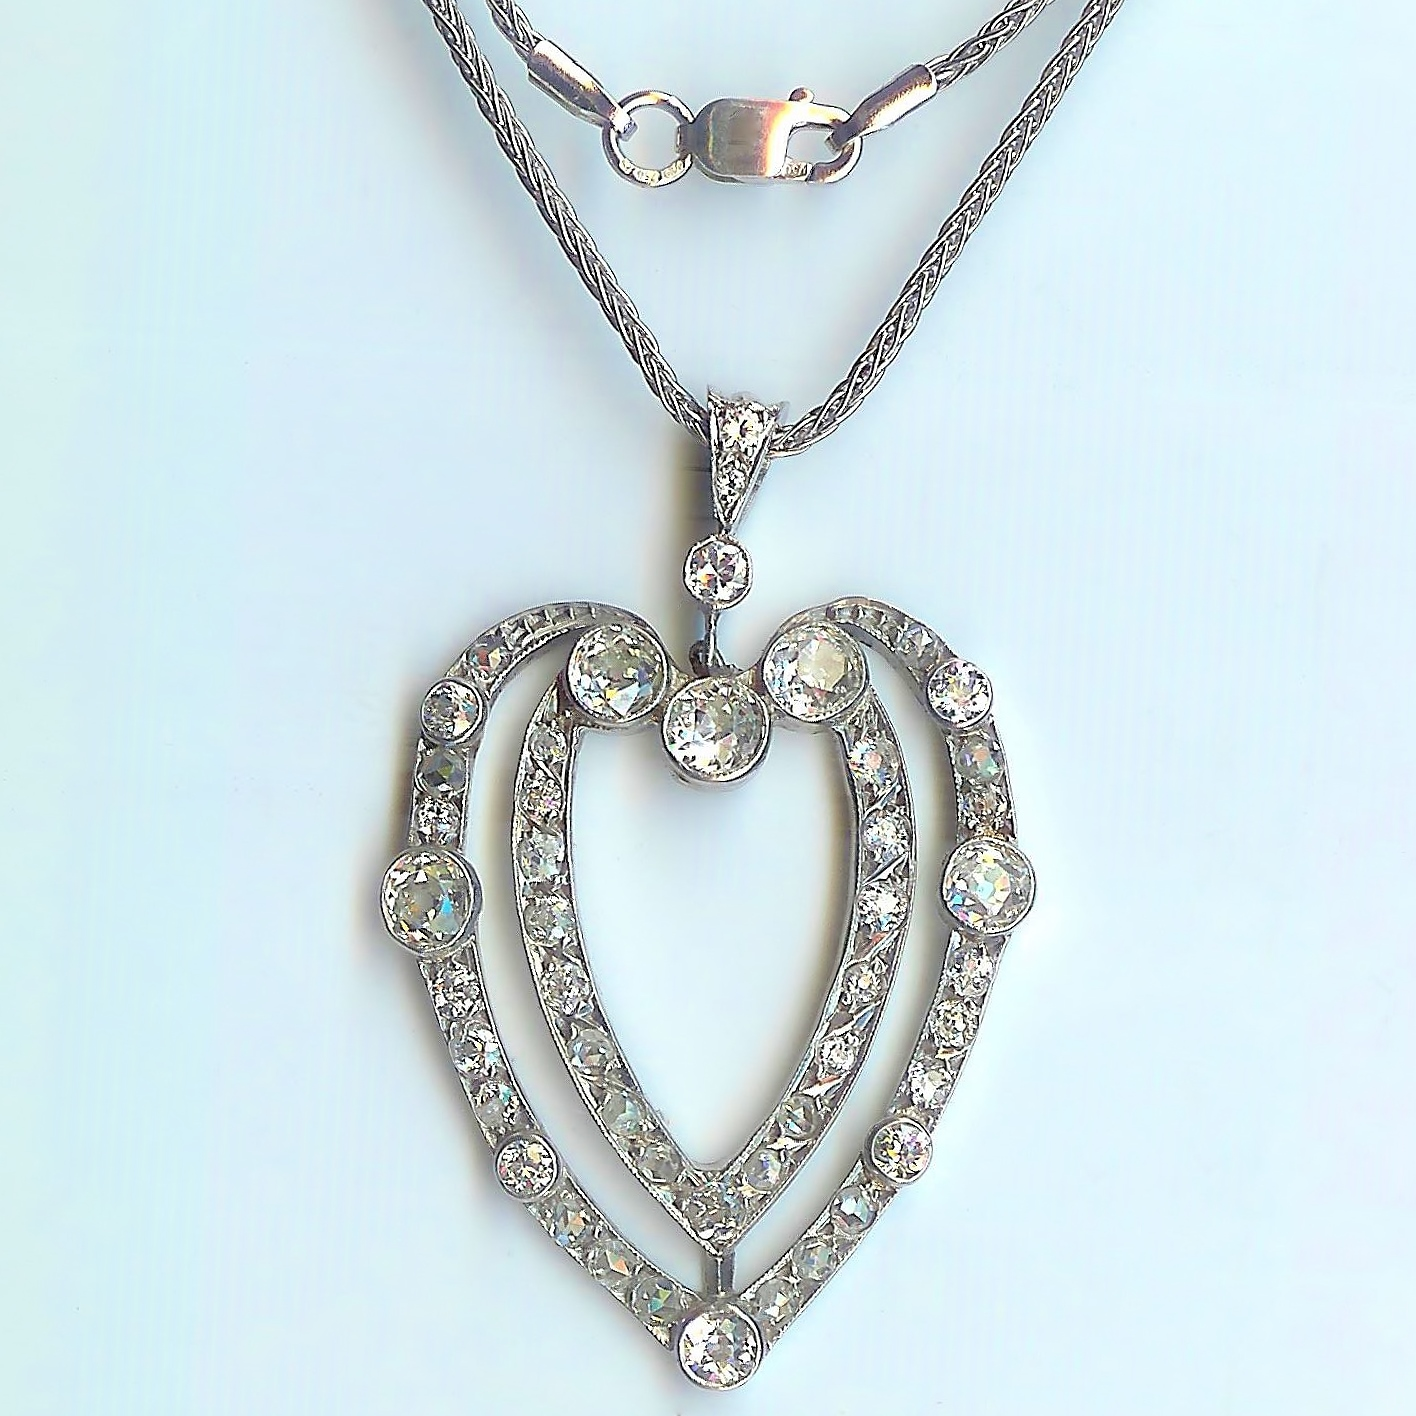 pendant bling xny white sterling vintage jewelry antique silver az teardrop diamond necklace opal